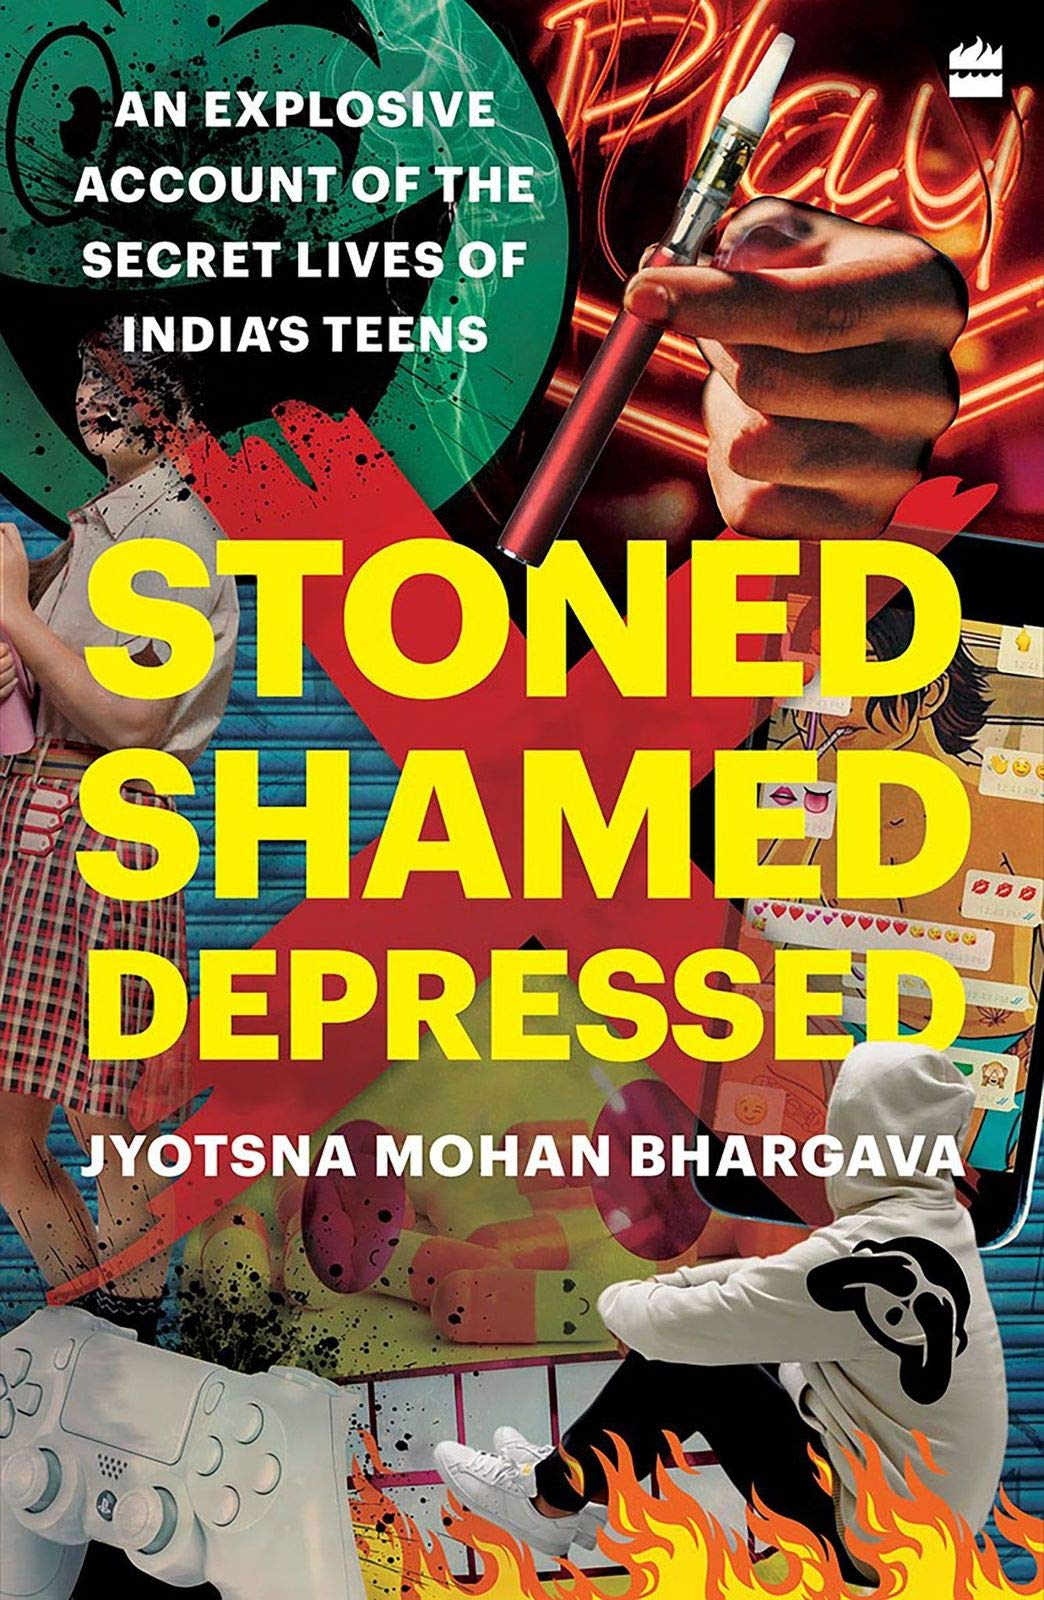 Buy Stoned, Shamed, Depressed: An Explosive Account of the Secret Lives of India's  Teens Book Online at Low Prices in India | Stoned, Shamed, Depressed: An Explosive  Account of the Secret Lives